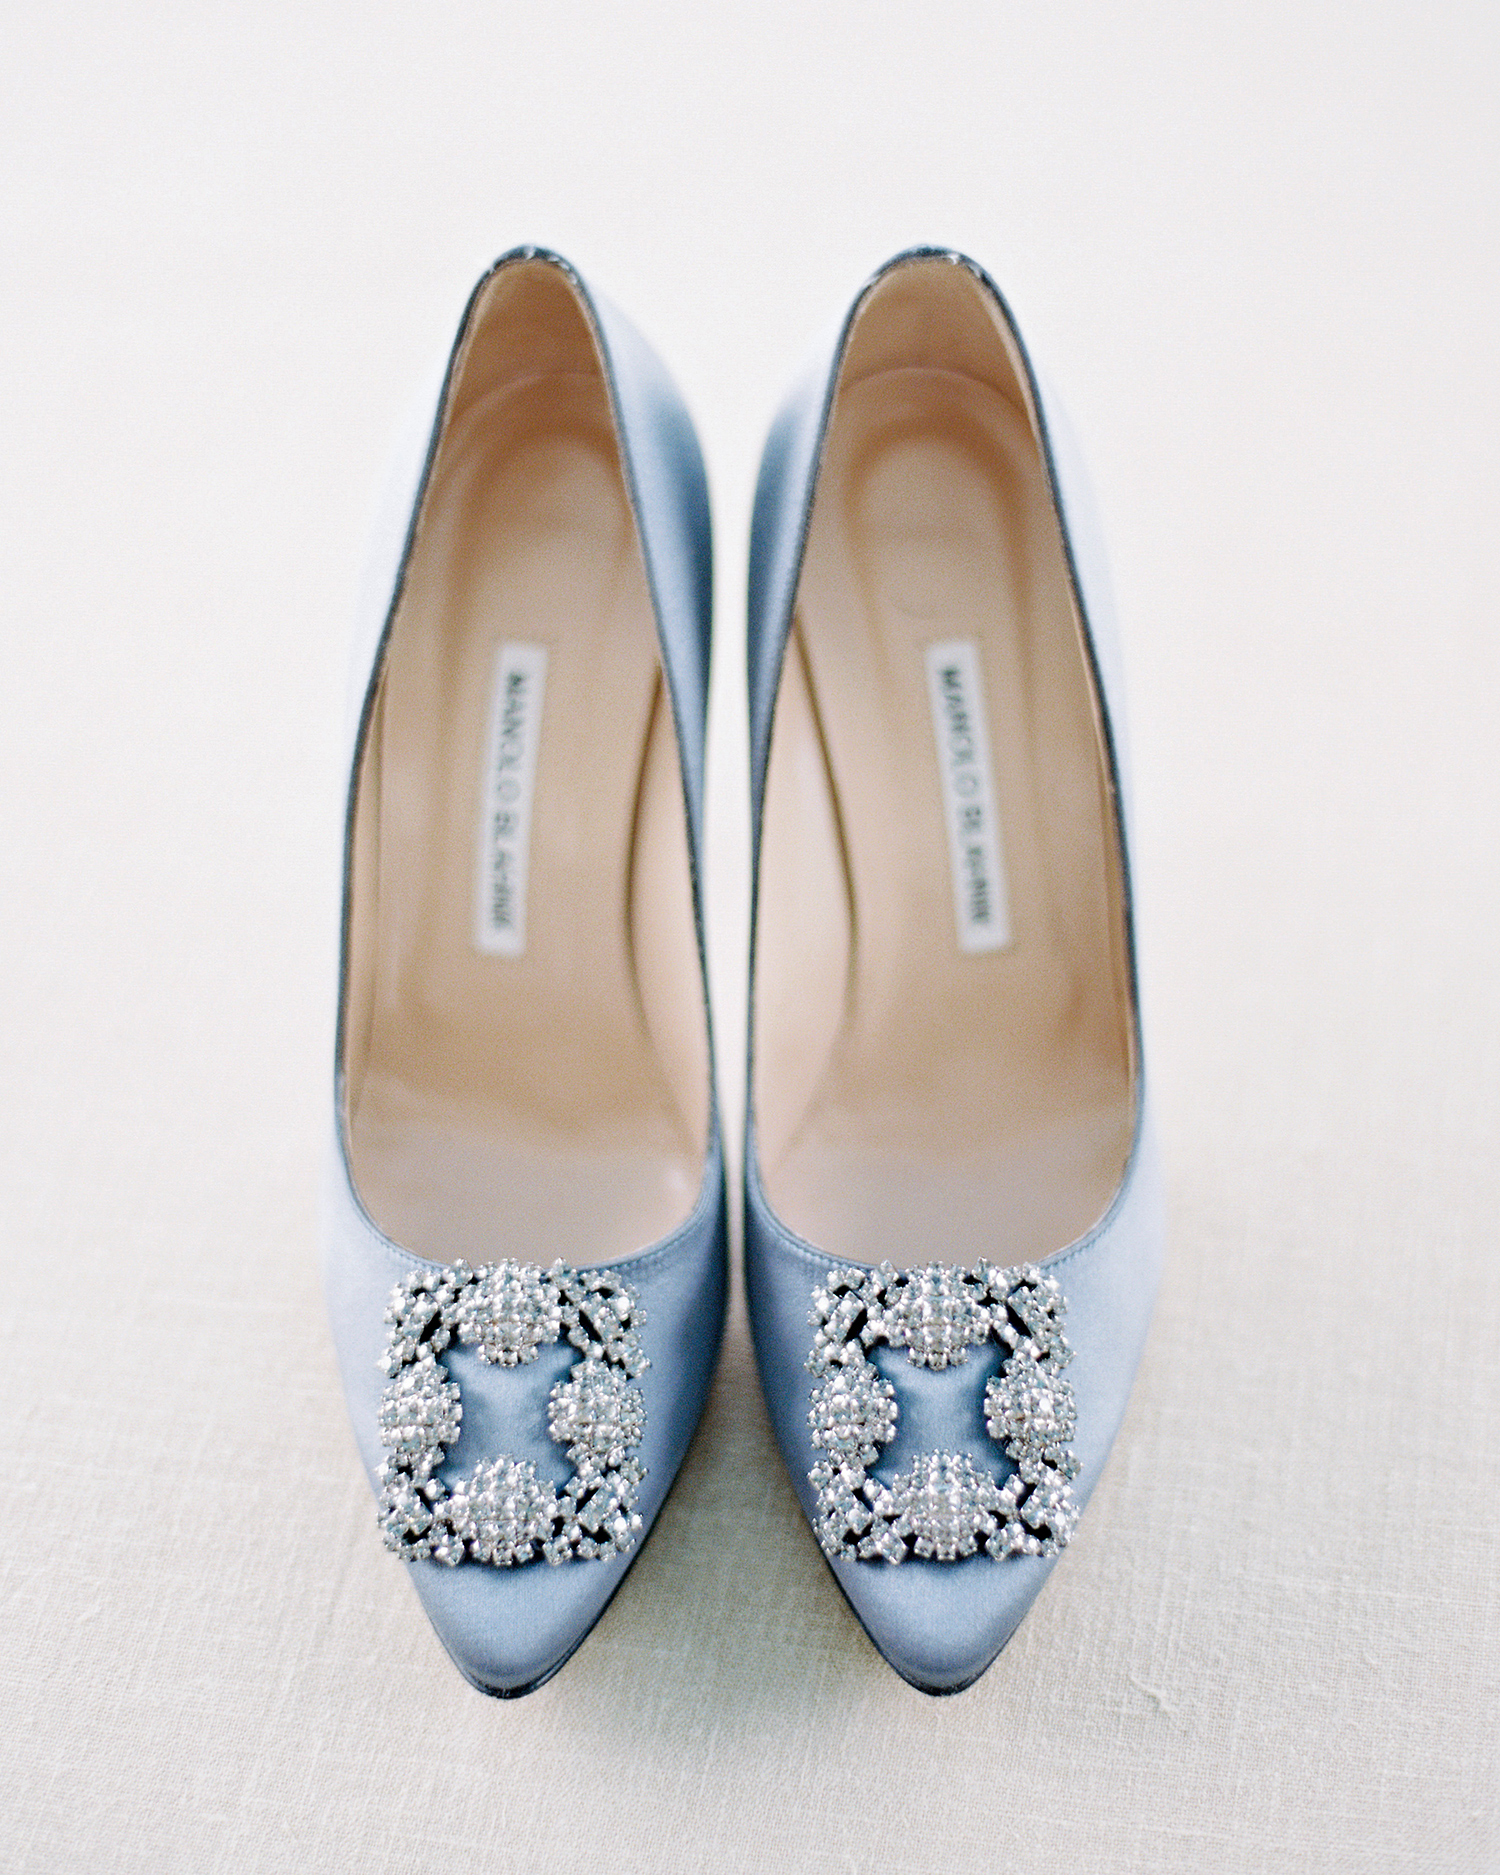 amanda alex wedding brides shoes